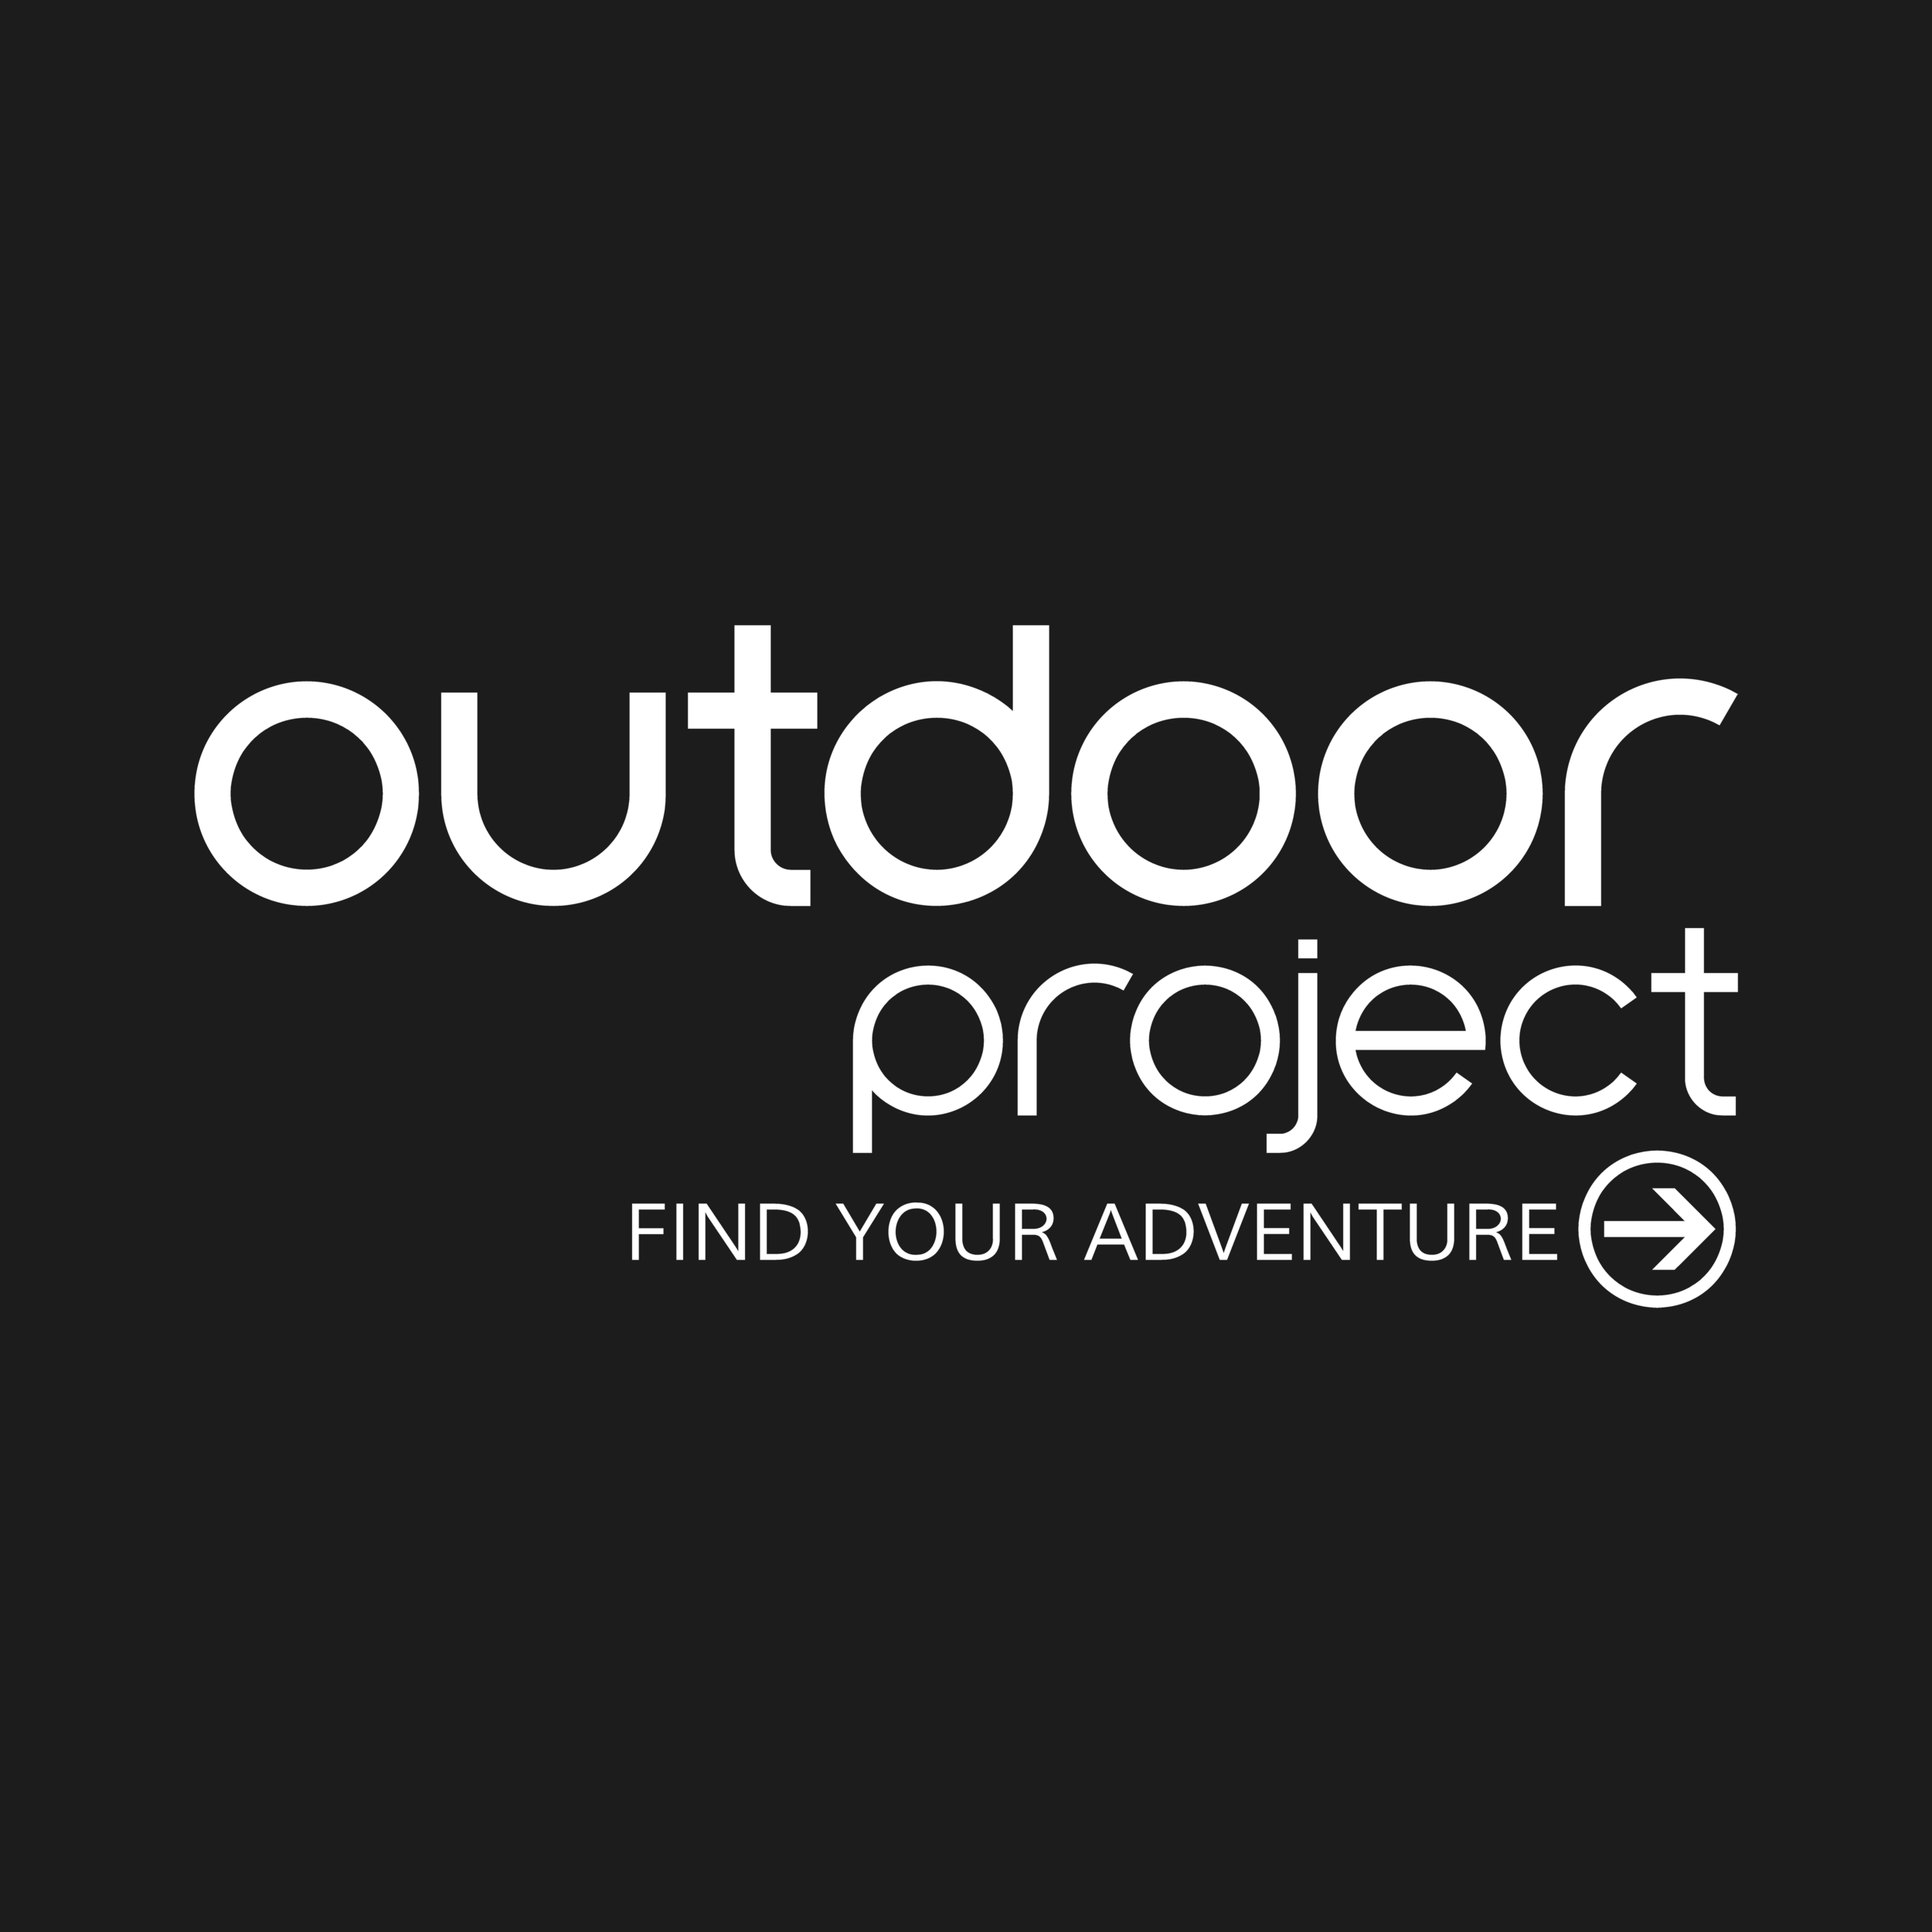 outdoorproject_find-your-adventure_white-box.png